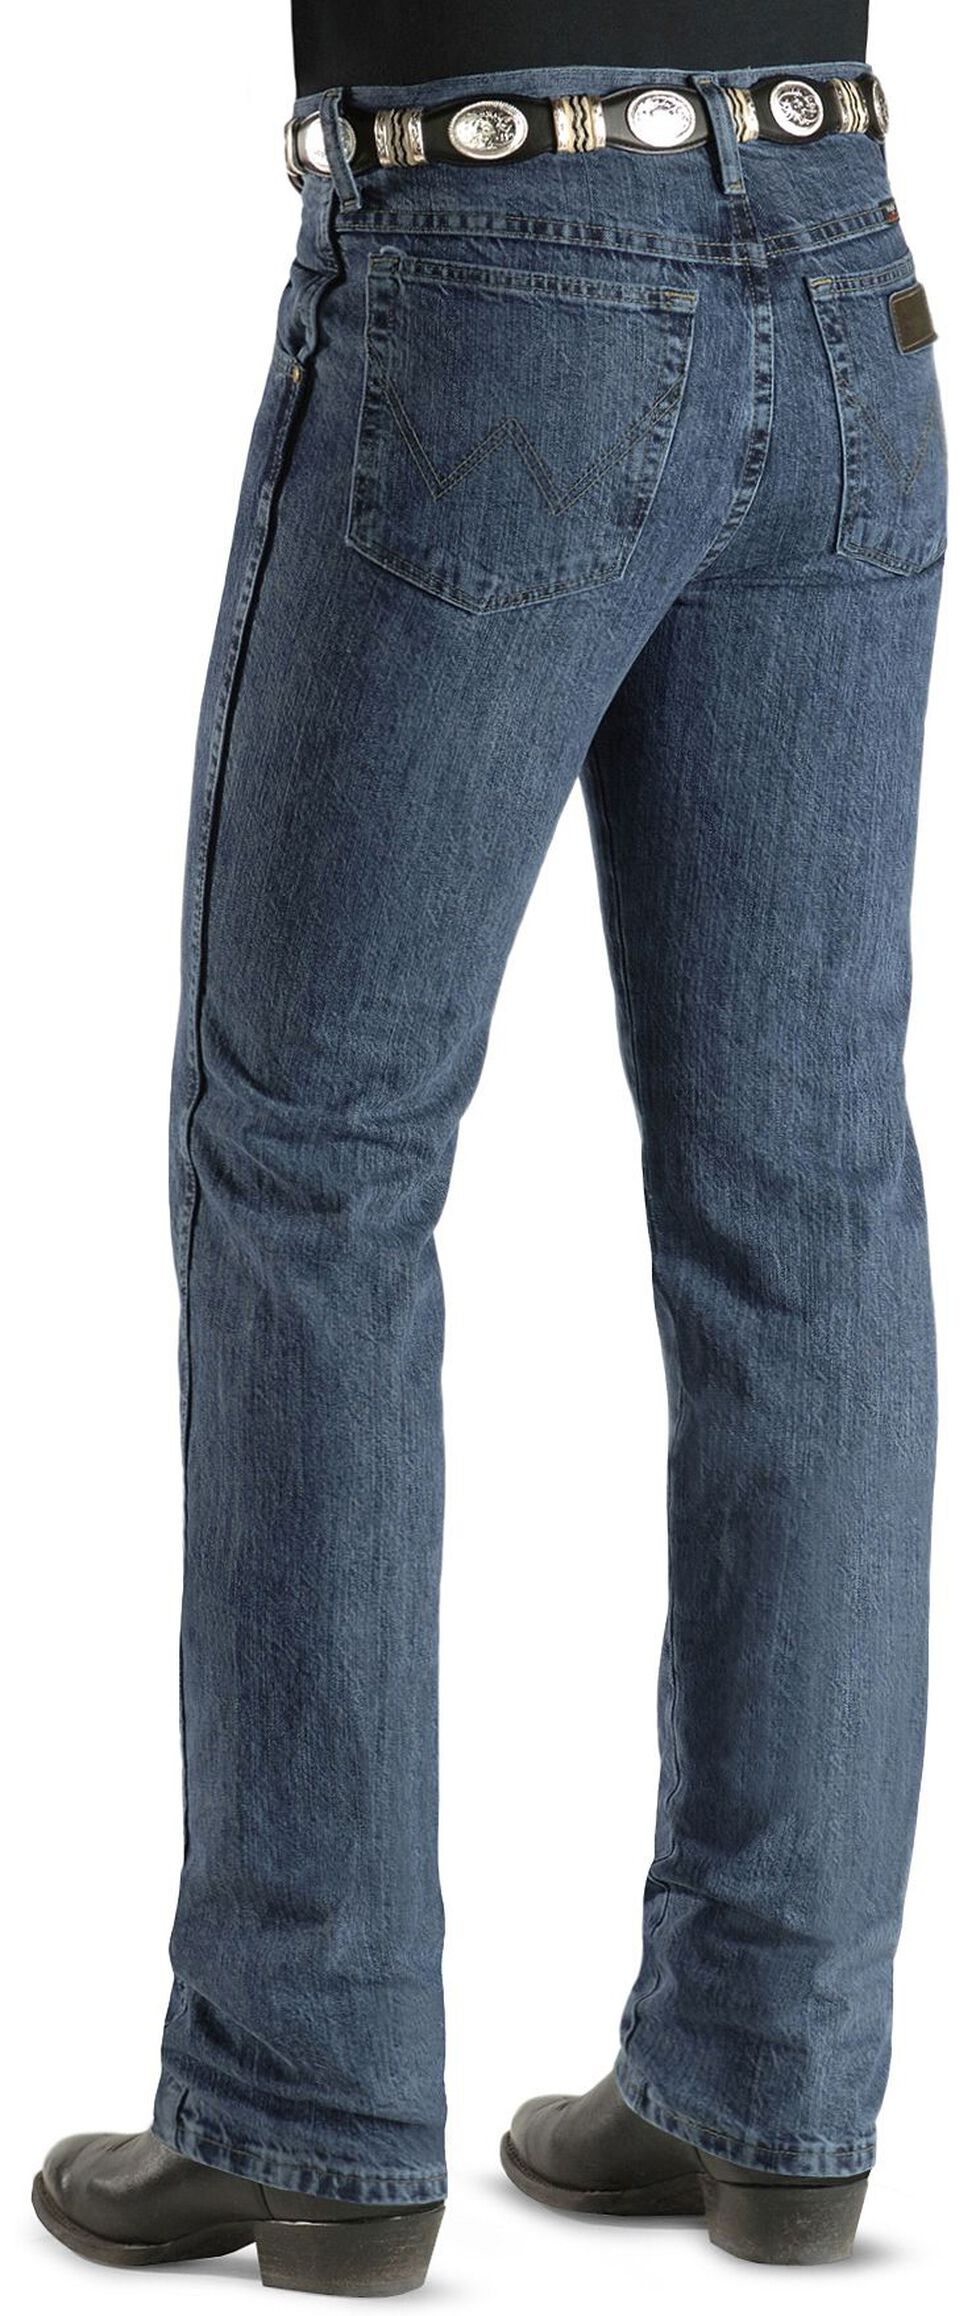 Wrangler Jeans - PBR Slim Fit, Auth Stone, hi-res